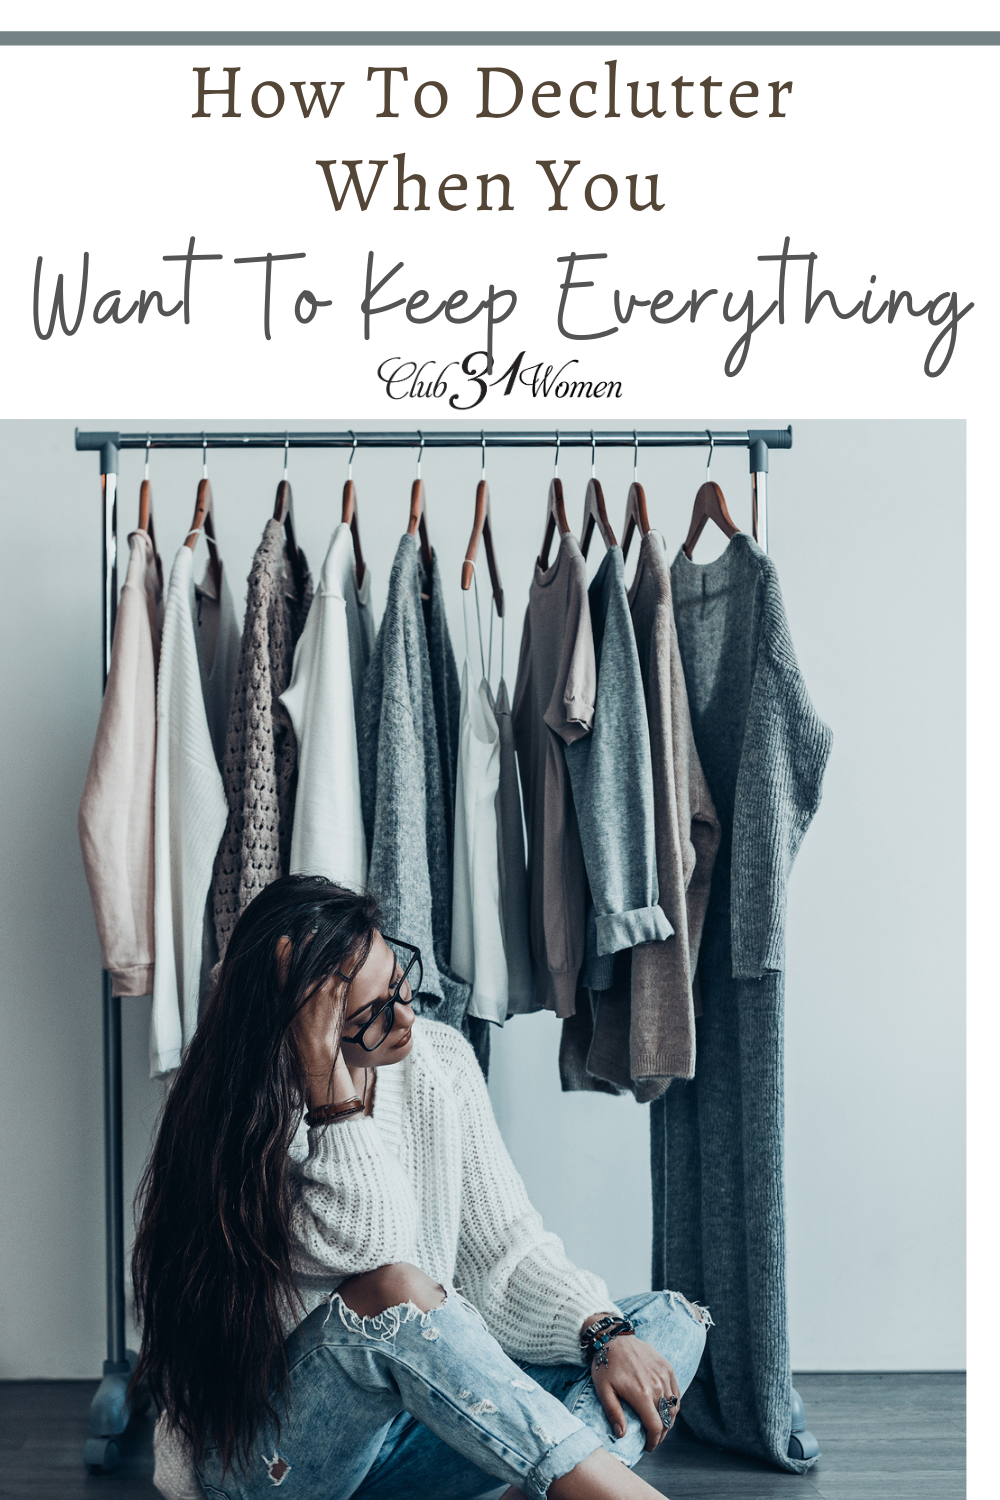 It can be difficult to declutter when you are able to justify a reason to keep everything. But what if we began to think differently? via @Club31Women